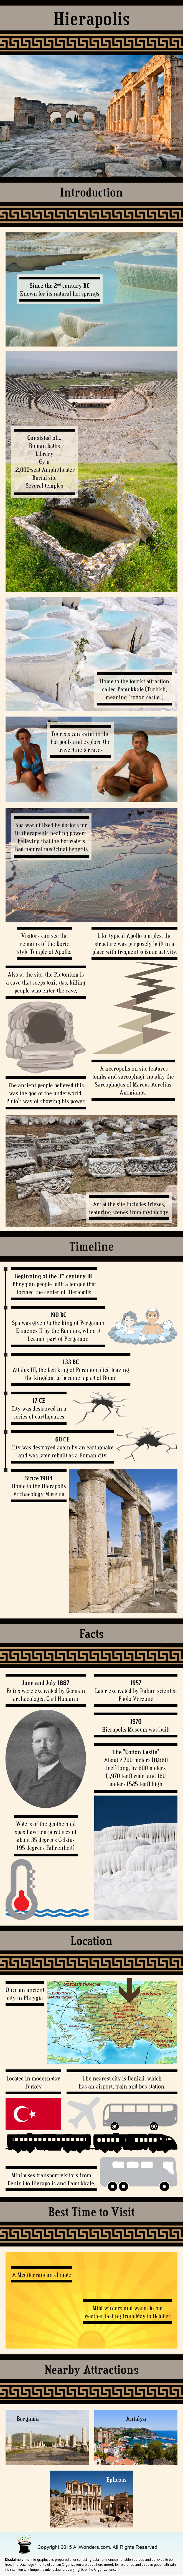 Hierapolis Travel Infographic